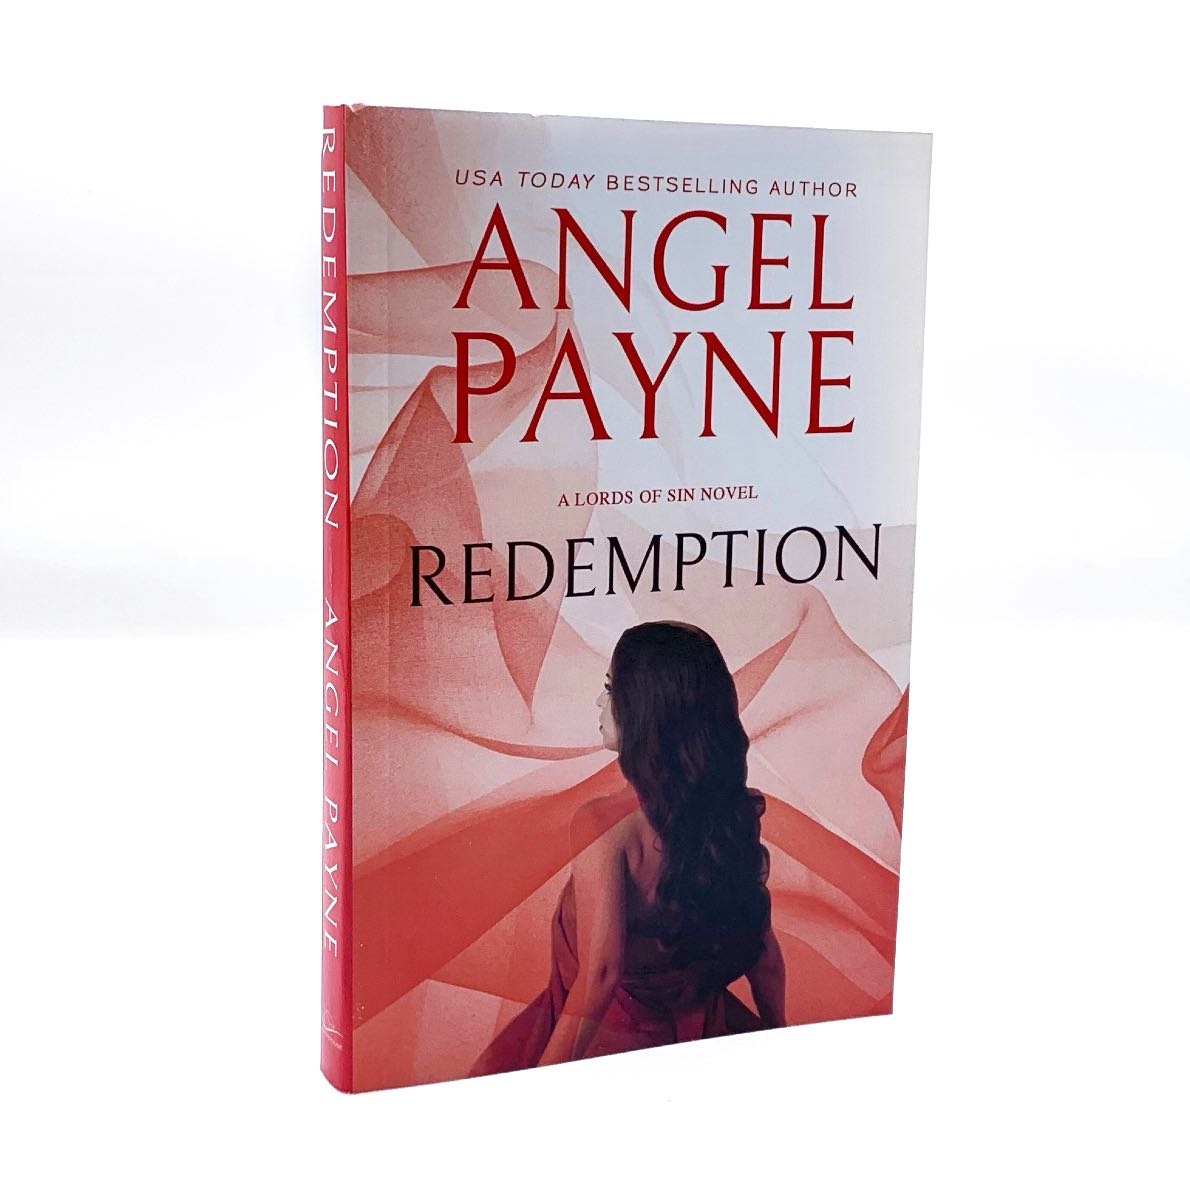 Redemption (A Lords of Sin Novel)